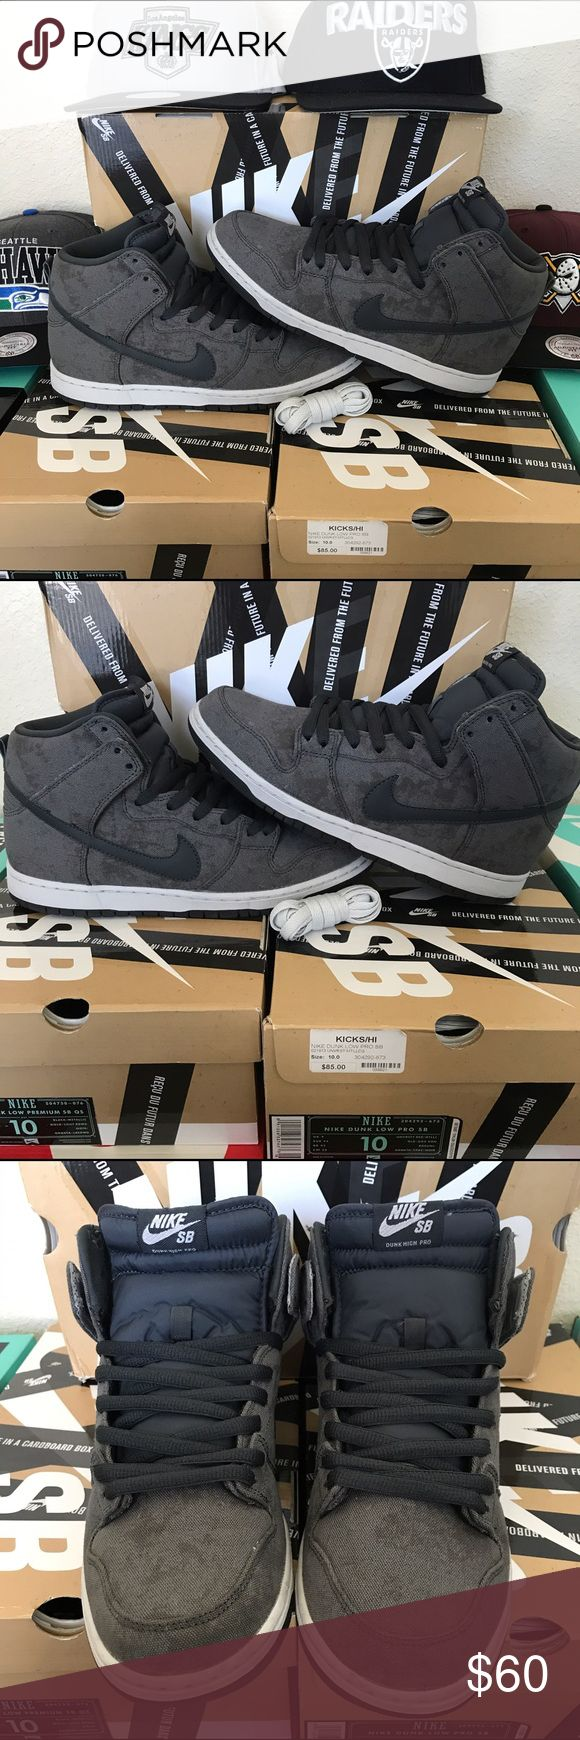 """NIKE SB Dunk High Pro """"Stained Canvas"""" colorway (NEUTRAL GREY-ANTHRACITE) - GENTLY USED/EXCELLENT CONDITION -- Retailed for $98 -- (*ALL HATS PICTURED ARE FOR SALE SEPARATELY*) Nike Shoes Sneakers"""